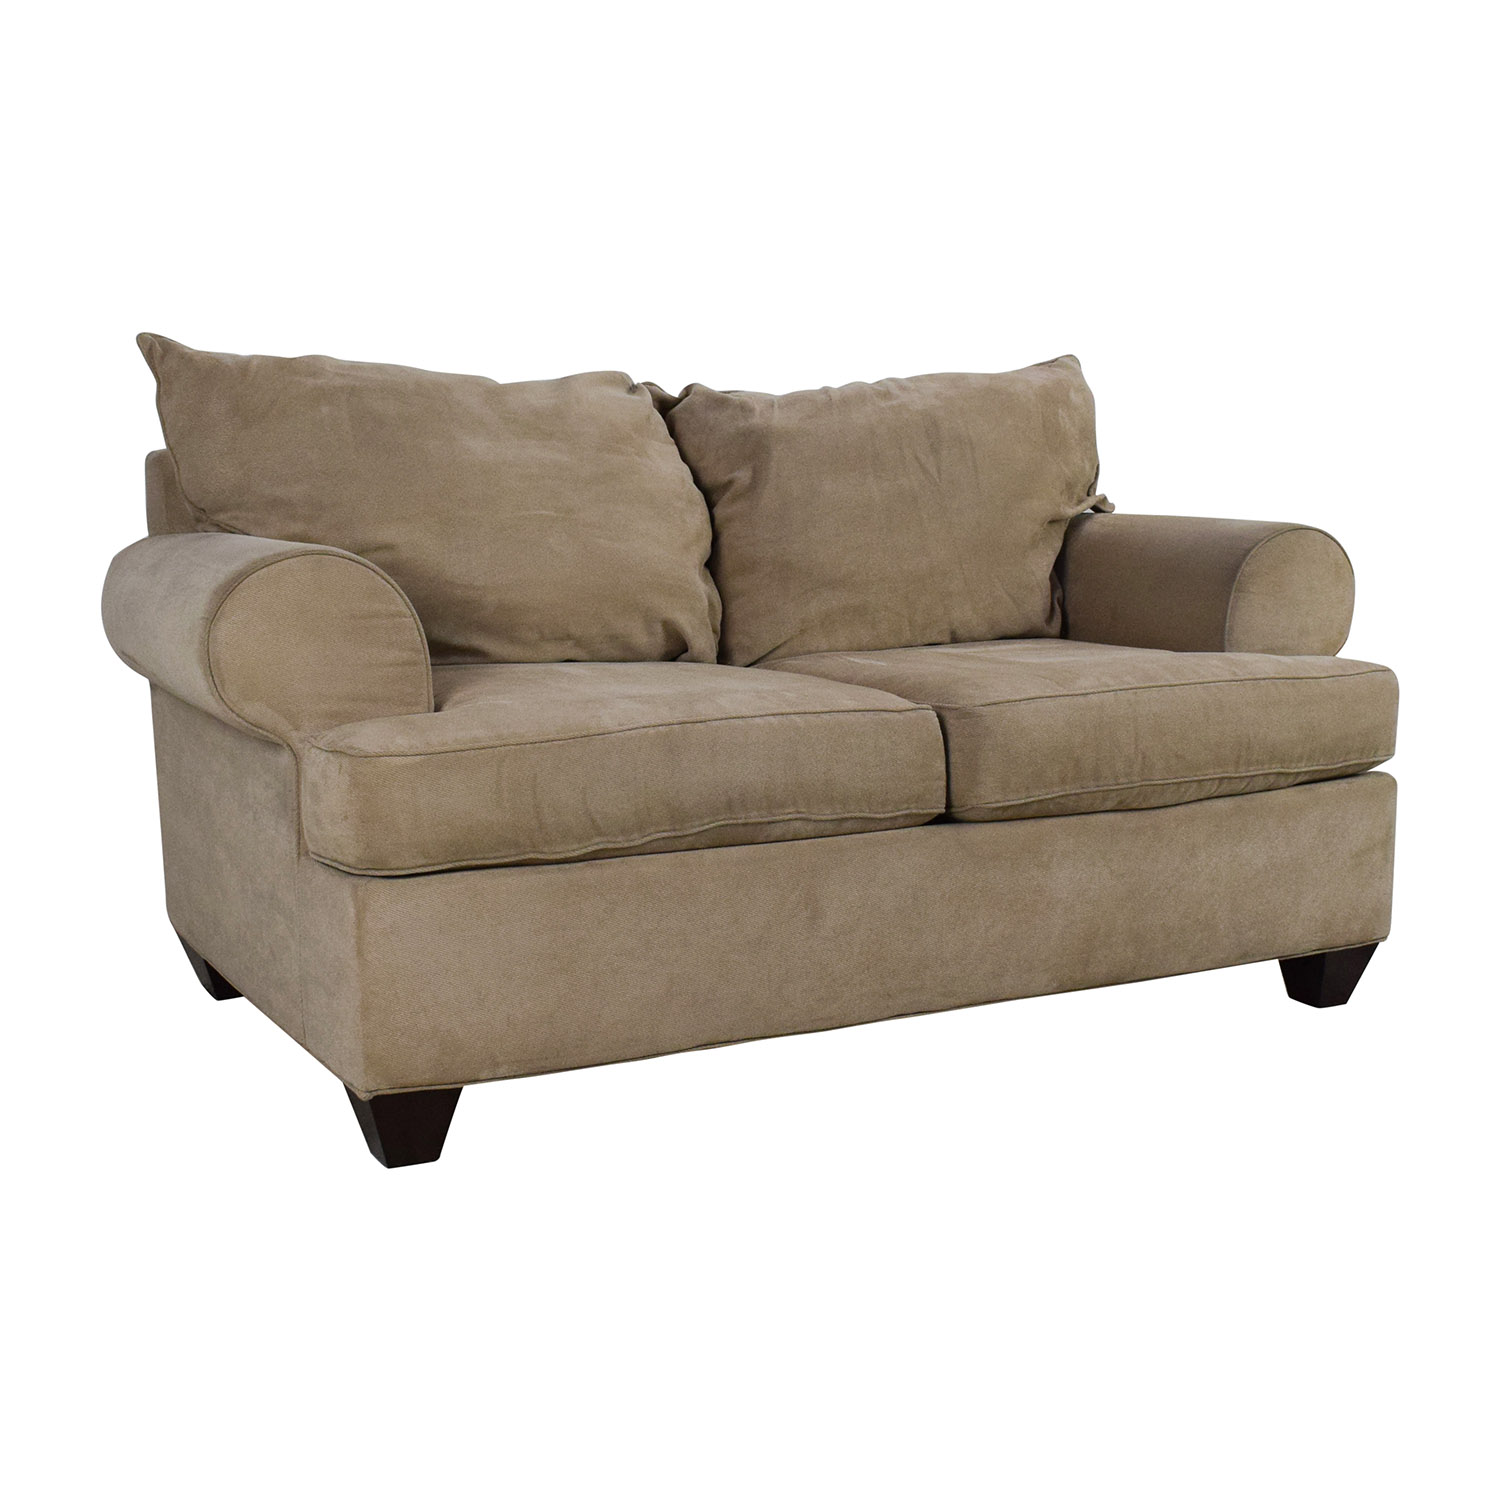 59 Off Raymour And Flanigan Raymour Flanigan Vegas Microfiber Sofa Sofas